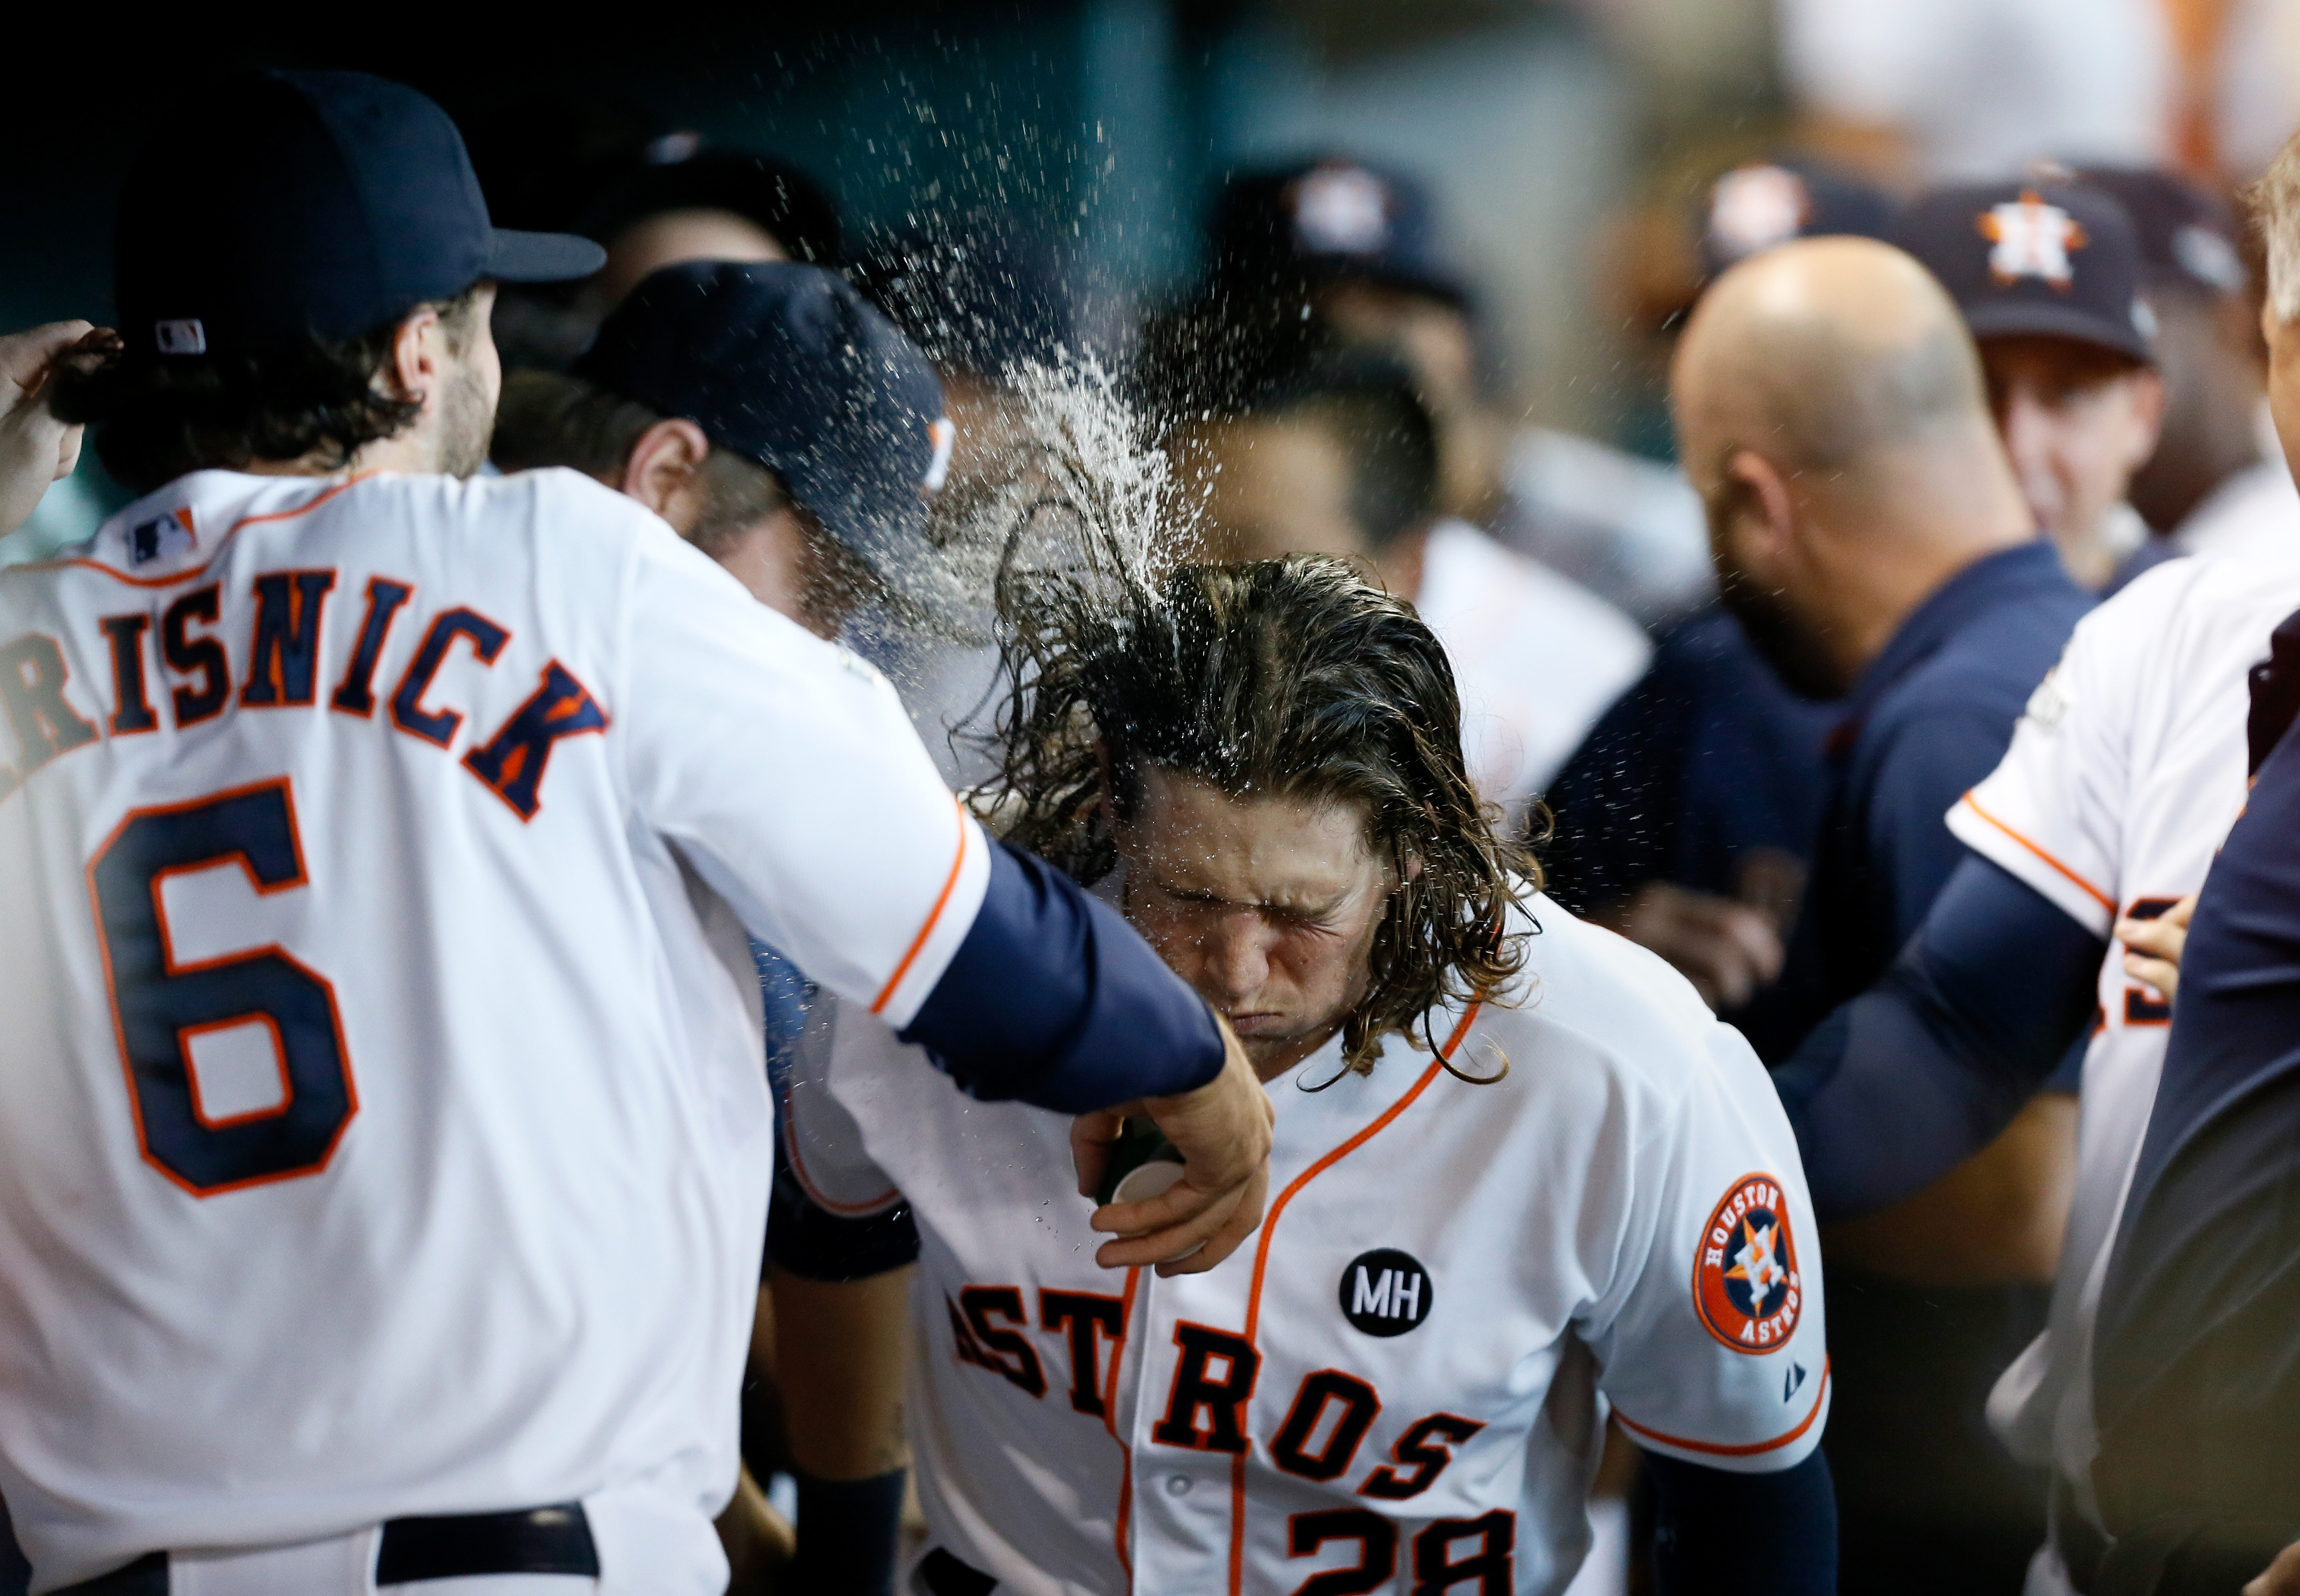 HOUSTON, TX - OCTOBER 12: Colby Rasmus #28 of the Houston Astros celebrates his seventh inning solo home run as Jake Marisnick #6 throws water on him against the Kansas City Royals during game four of the American League Divison Series at Minute Maid Park on October 12, 2015 in Houston, Texas. (Photo by Bob Levey/Getty Images)